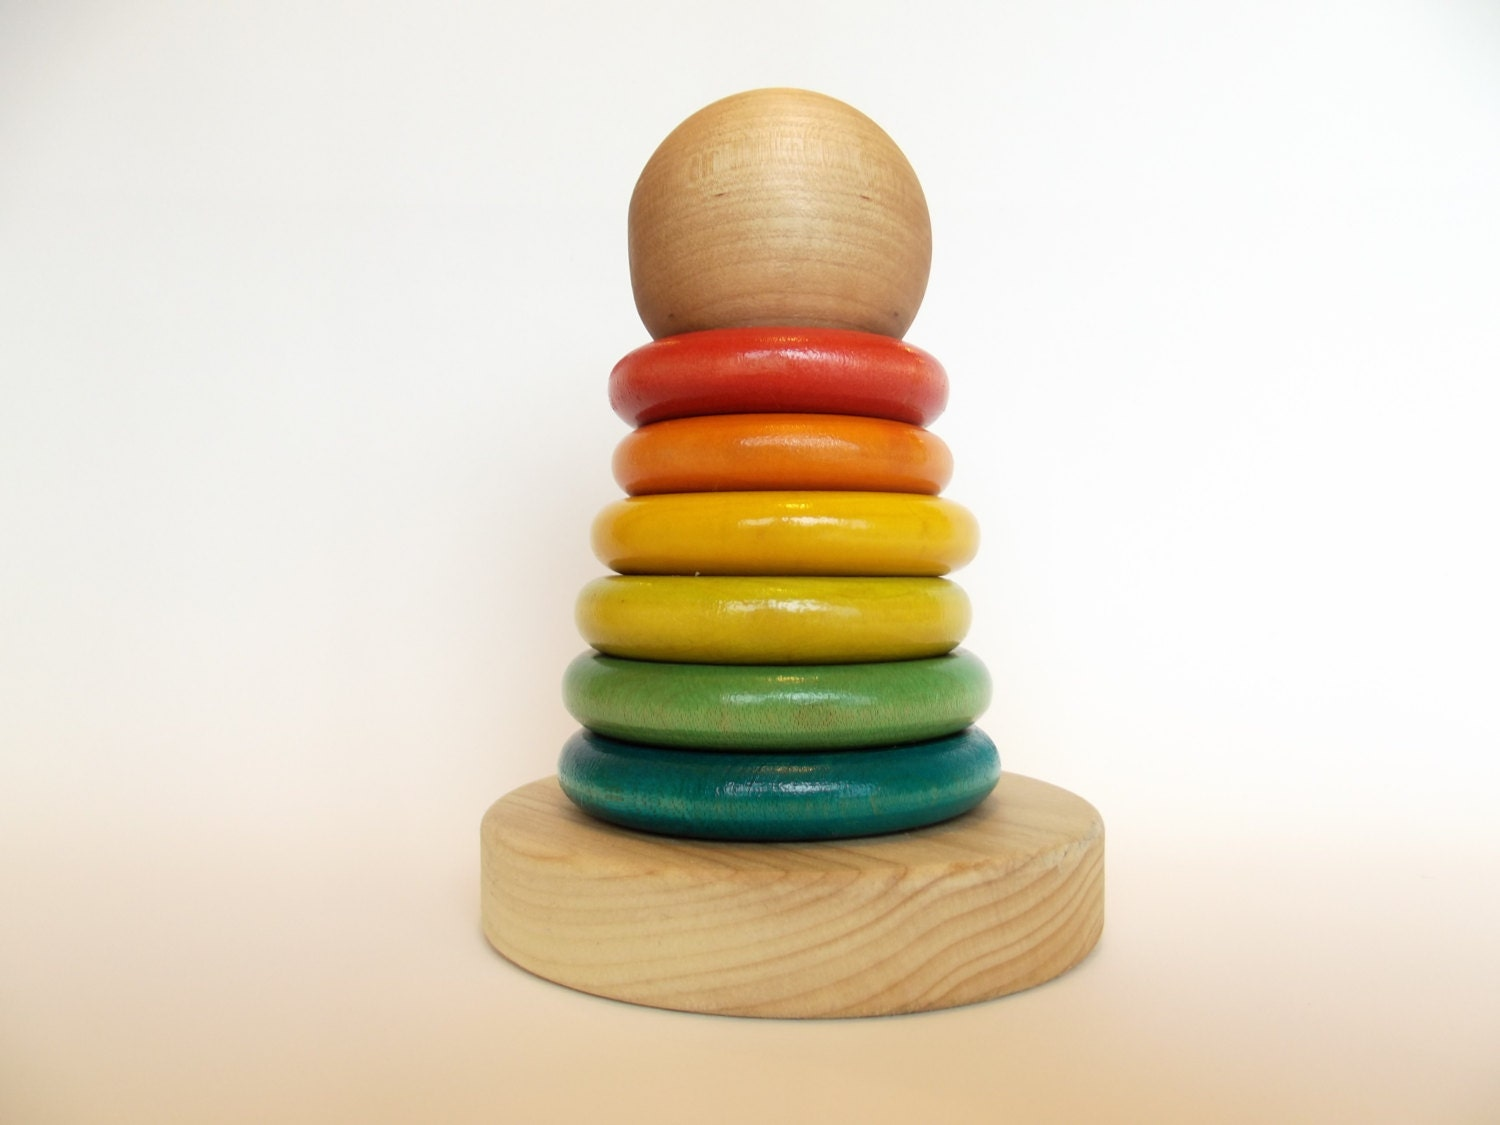 Stacking Rings Toy : Wooden stacking rainbow rings organic baby teething toy six